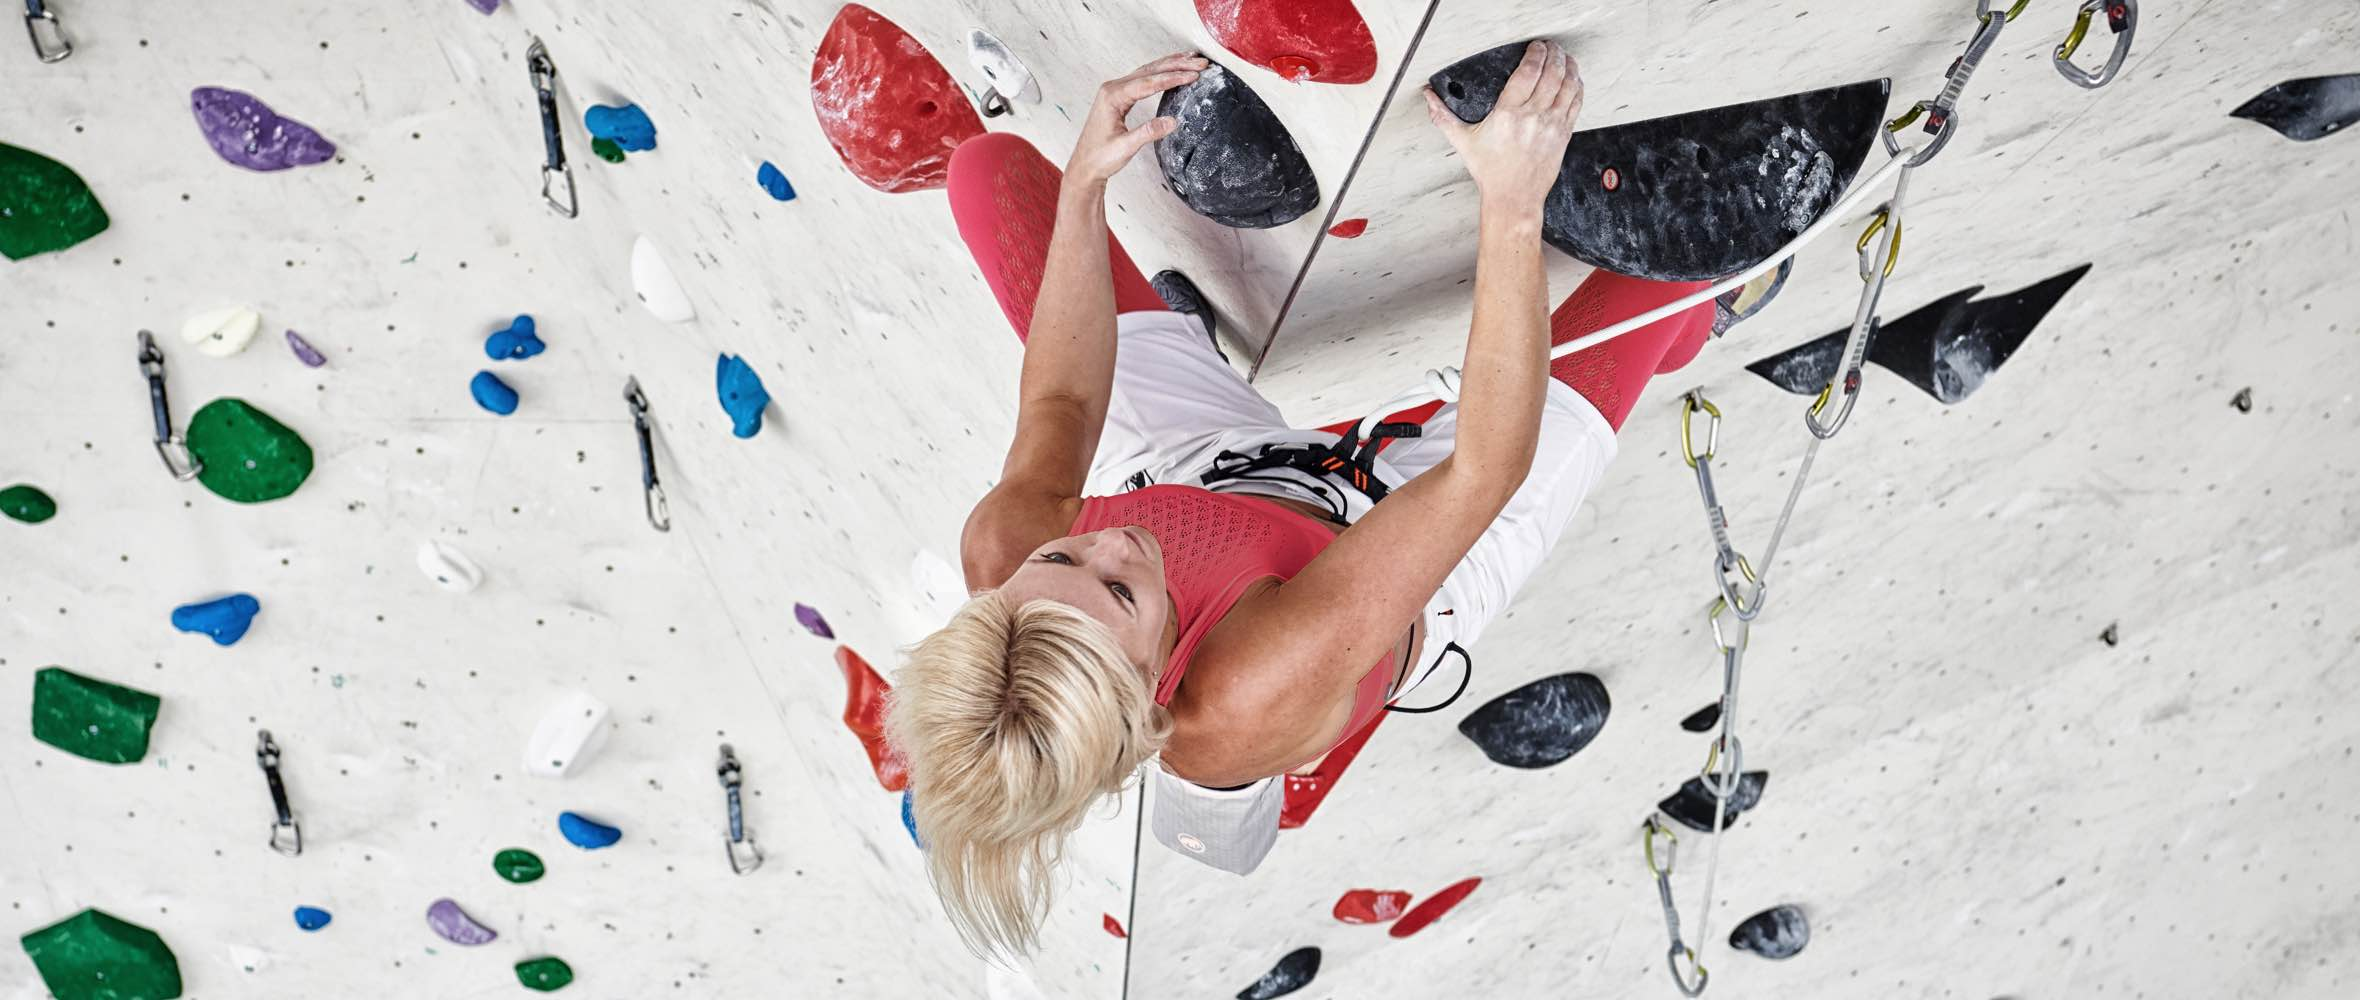 Mammut Pro Team athlete Sierra Blair-Coyle during climbing training in a climbing hall.